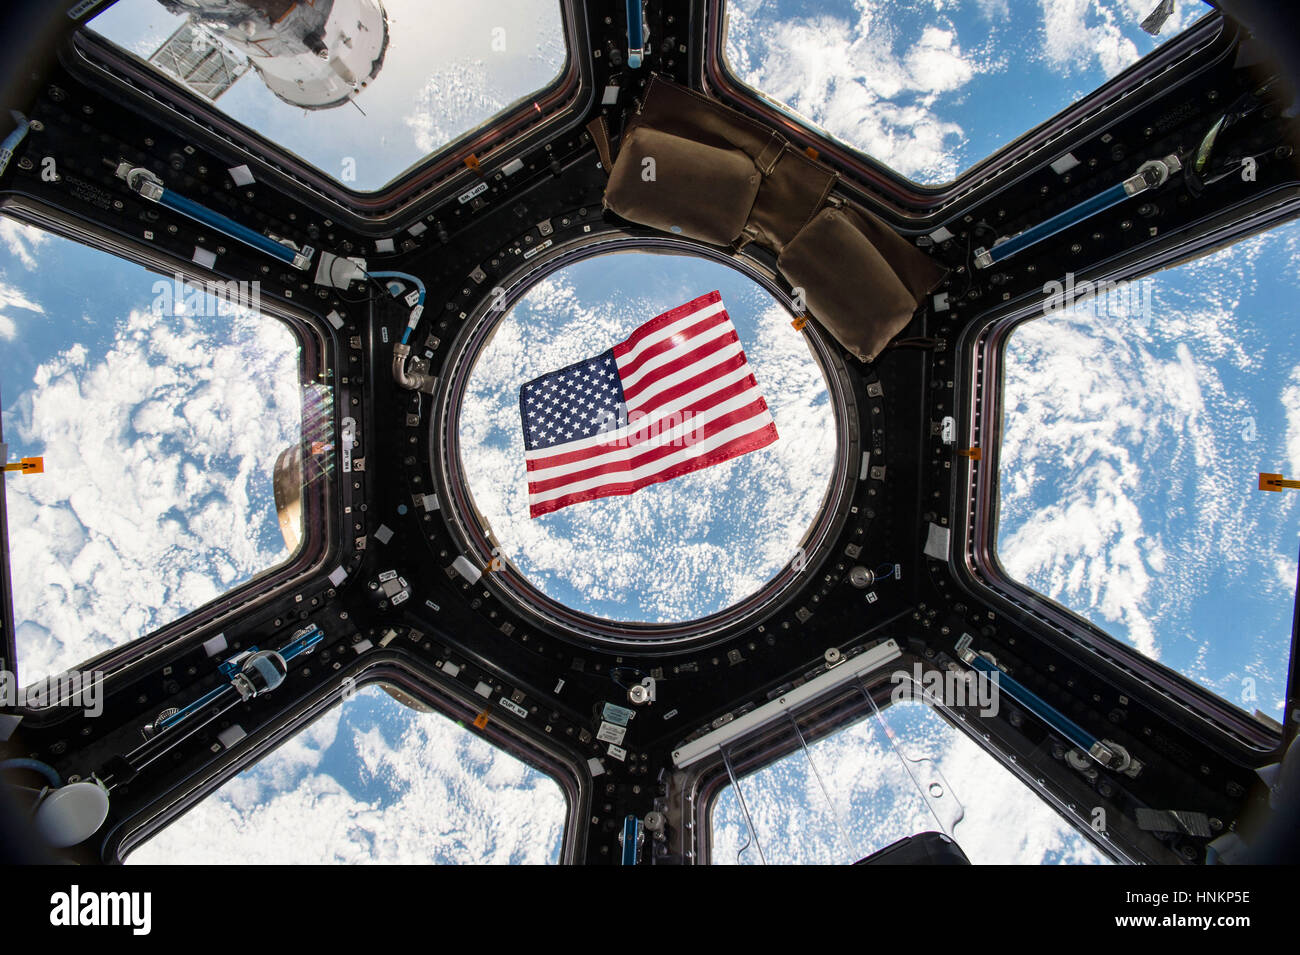 American flag is visible in the windows of the cupola aboard the International Space Station - Stock Image